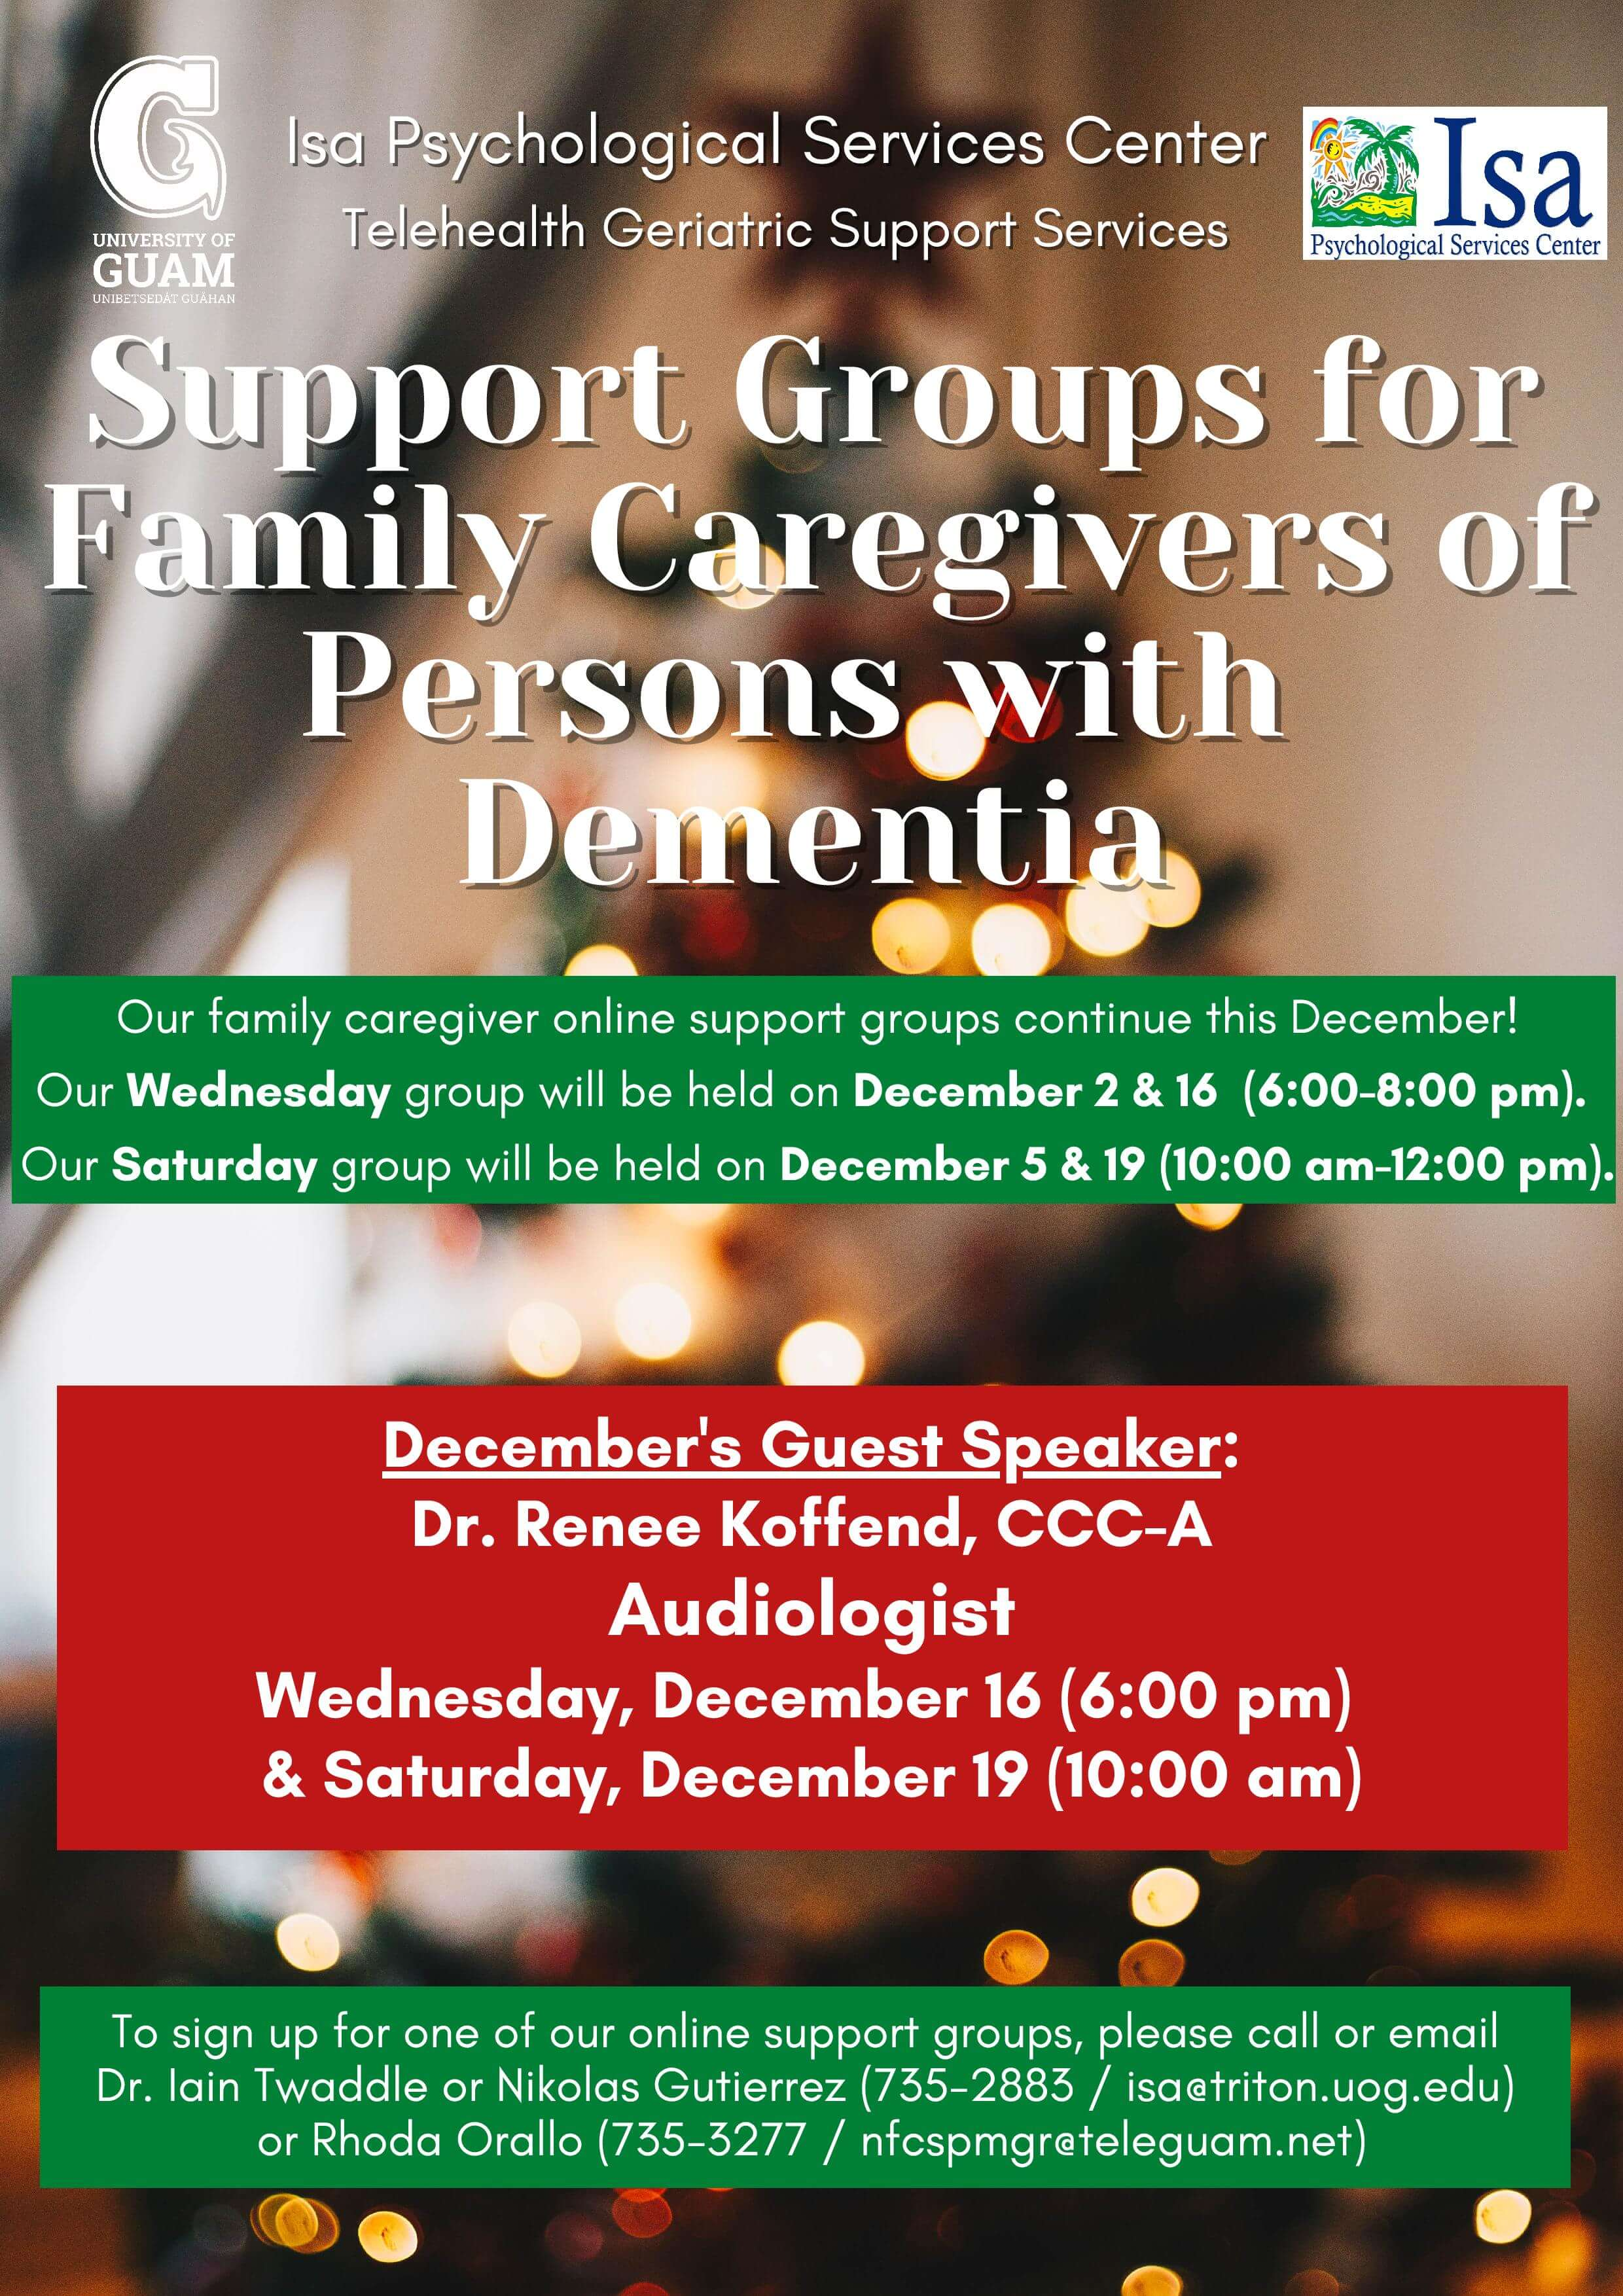 Support group for family caregivers of persons with dementia